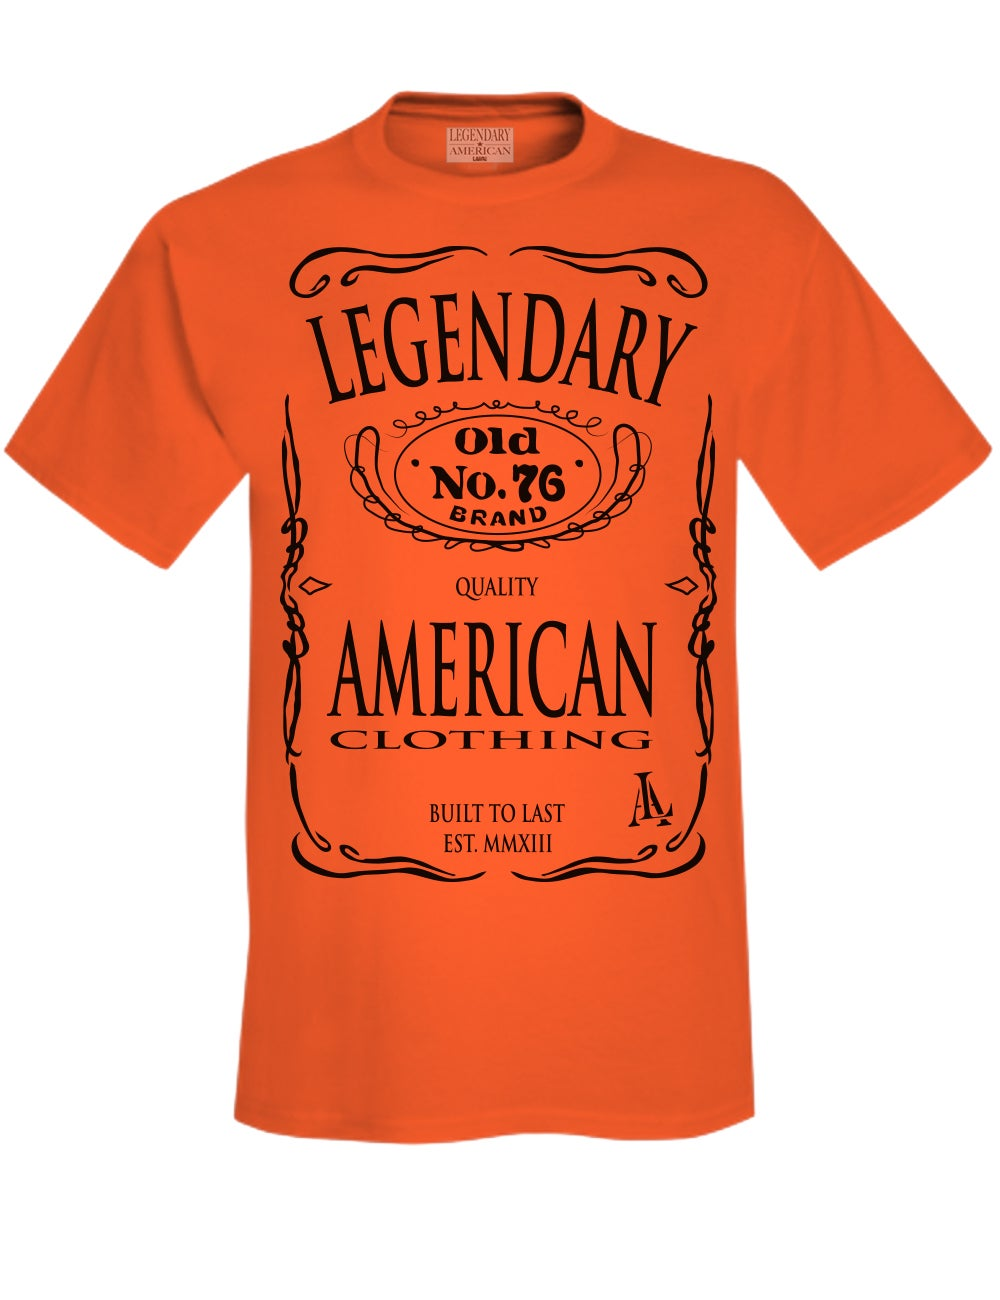 Image of Legendary American Old No. 76 tee in orange